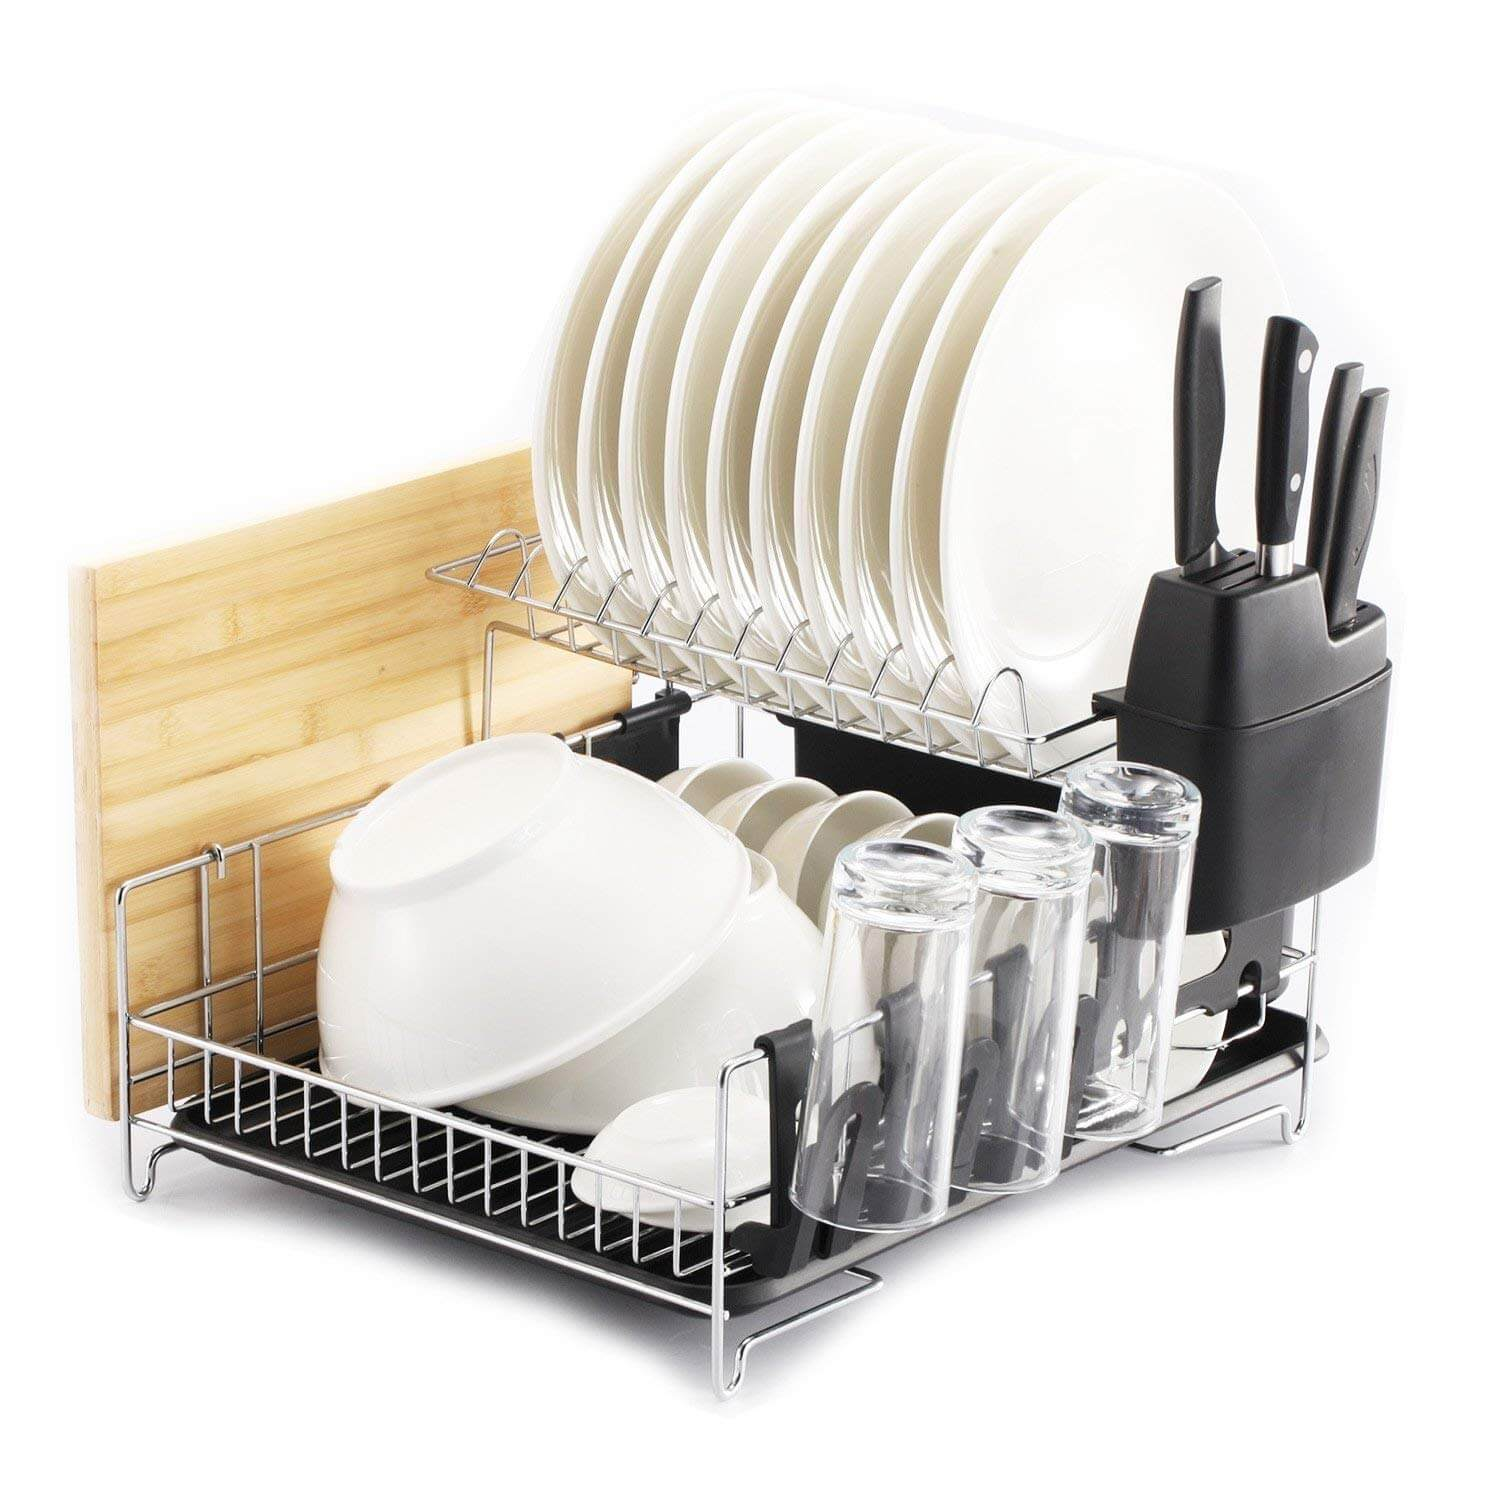 PremiumRacks Professional Dish Rack - 304 Stainless Steel